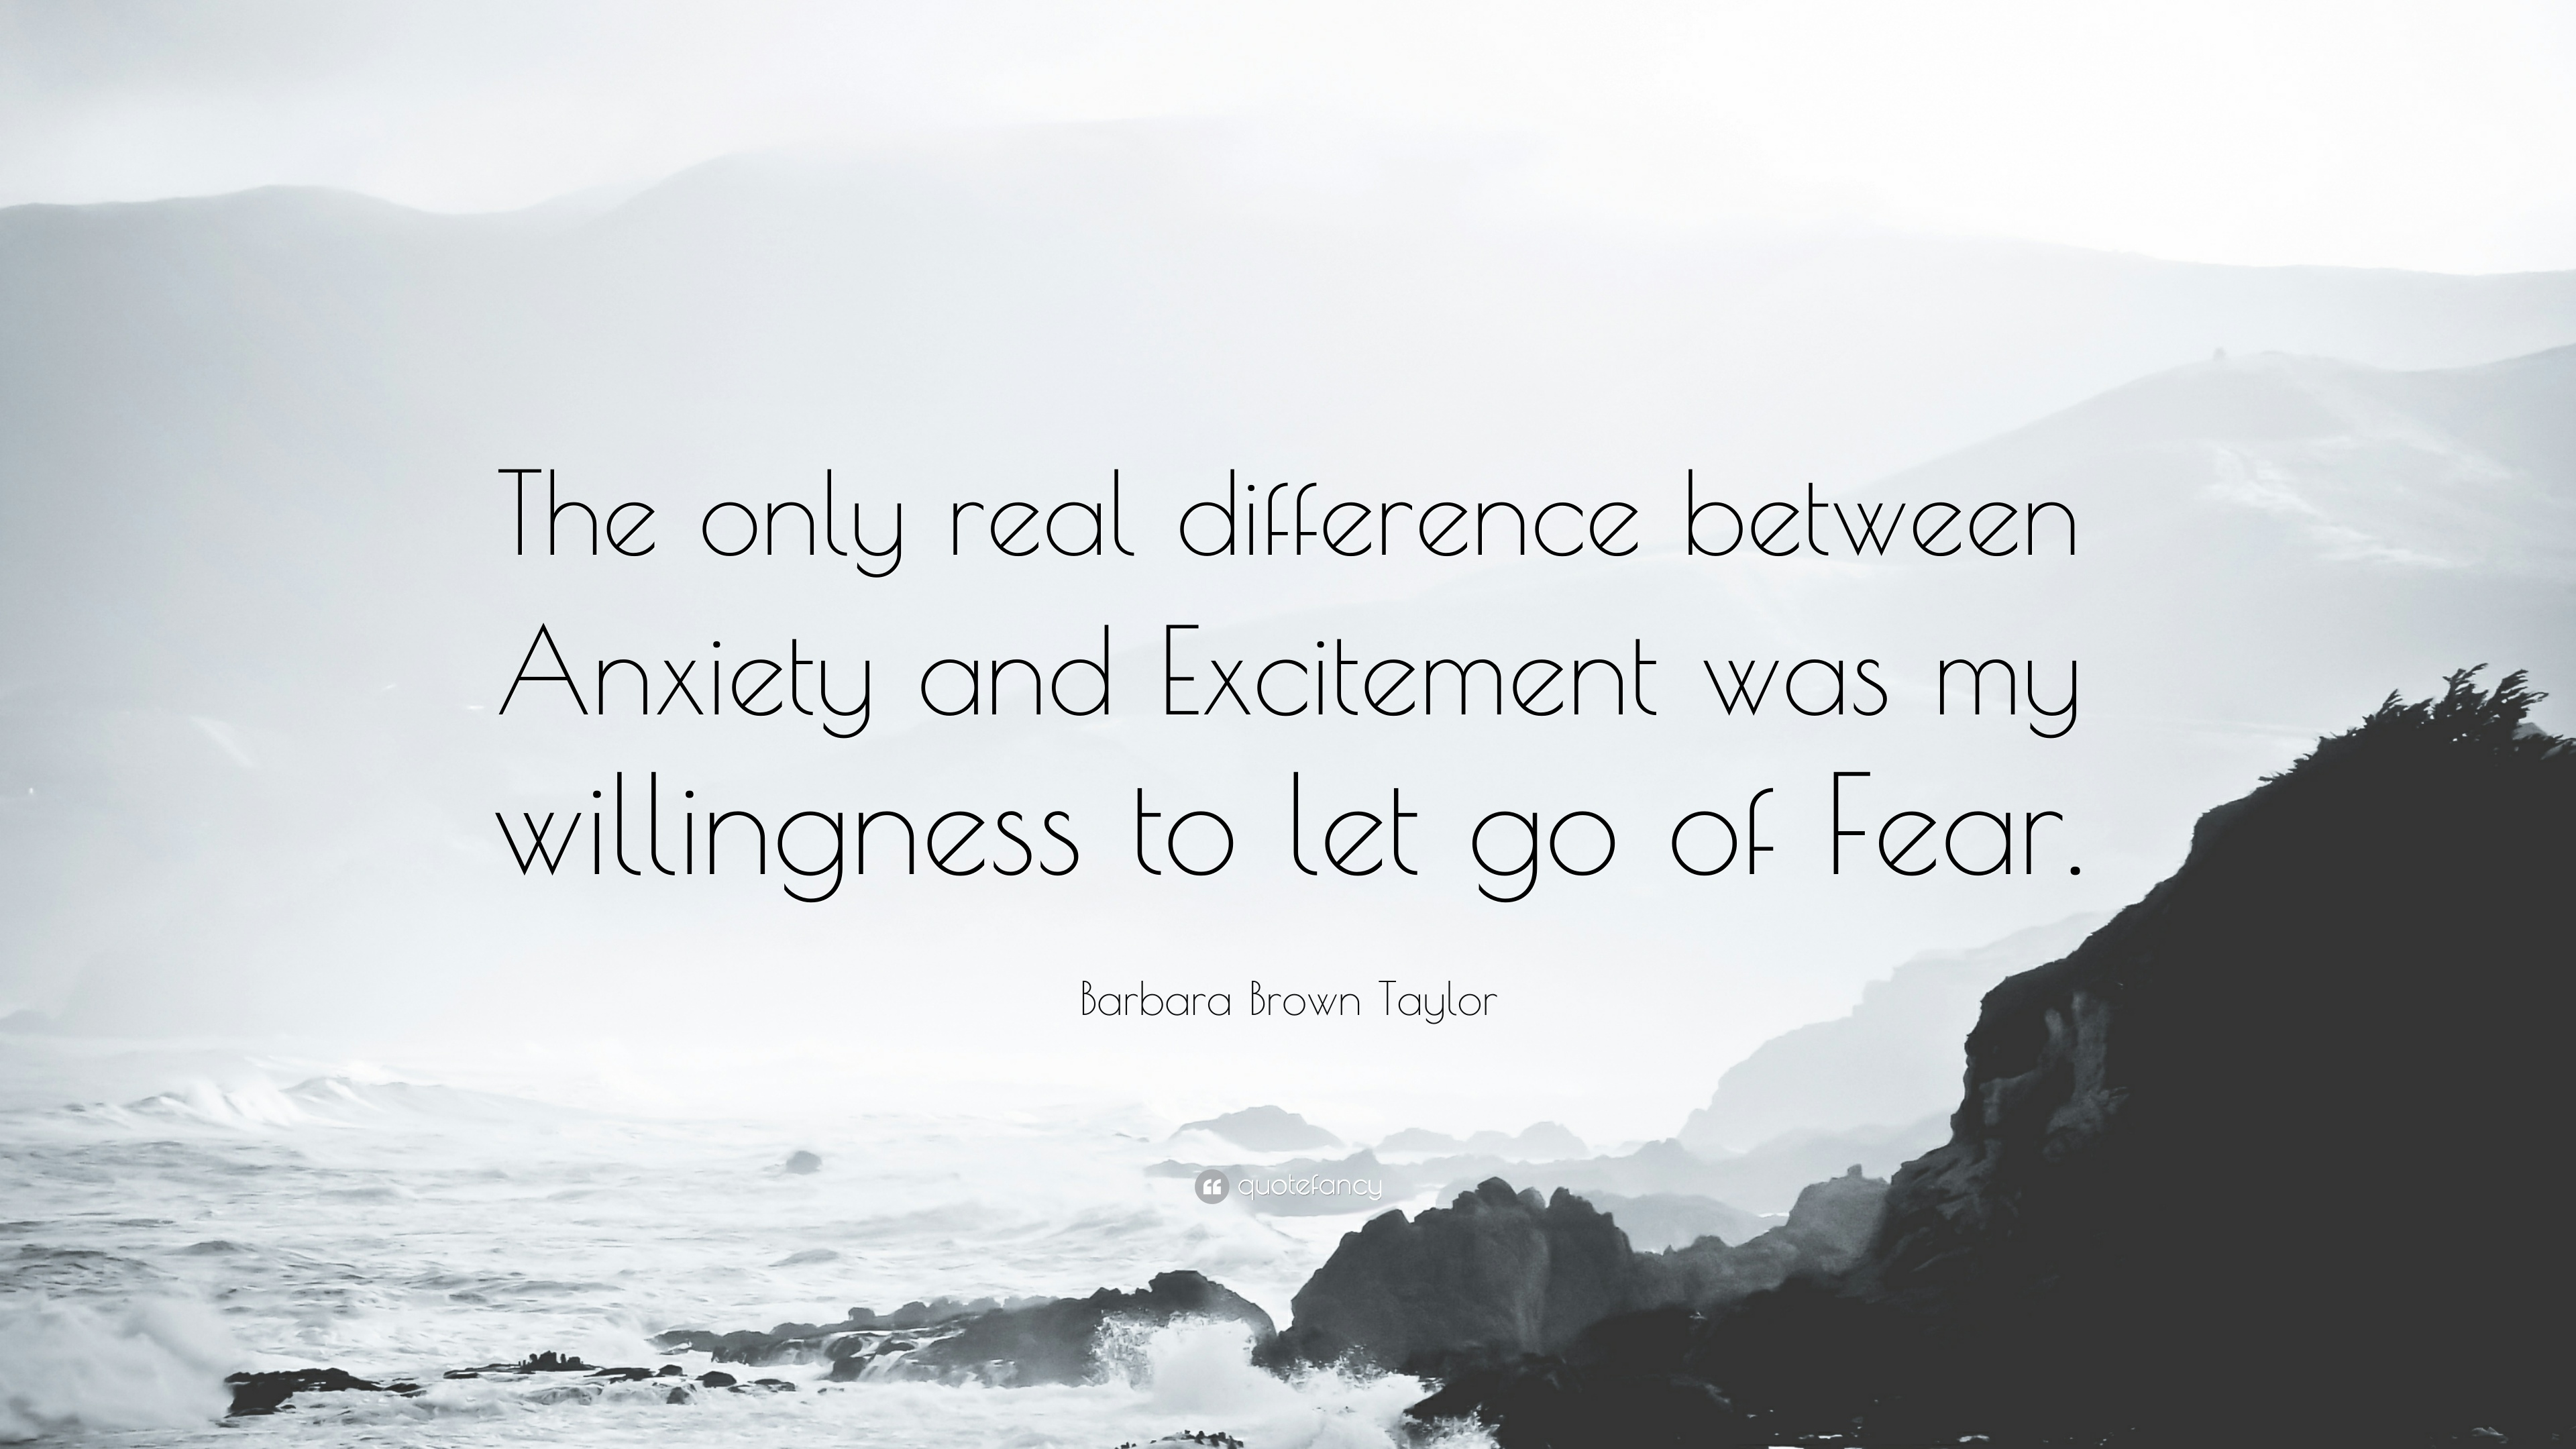 Barbara Brown Taylor Quote The Only Real Difference Between Anxiety And Excitement Was My Willingness To Let Go Of Fear 7 Wallpapers Quotefancy